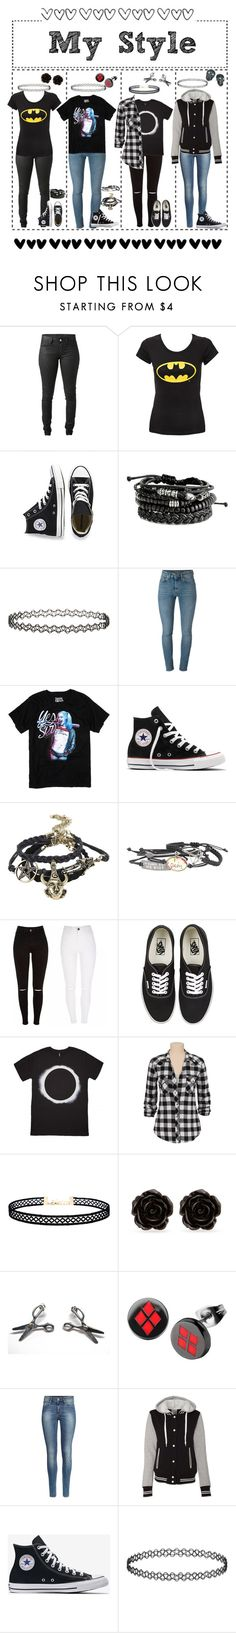 """""""My style"""" by emmcg915 ❤ liked on Polyvore featuring Acne Studios, Converse, Topshop, Yves Saint Laurent, Vans, Silver Jeans Co., LULUS, Erica Lyons, H&M and Tarina Tarantino"""